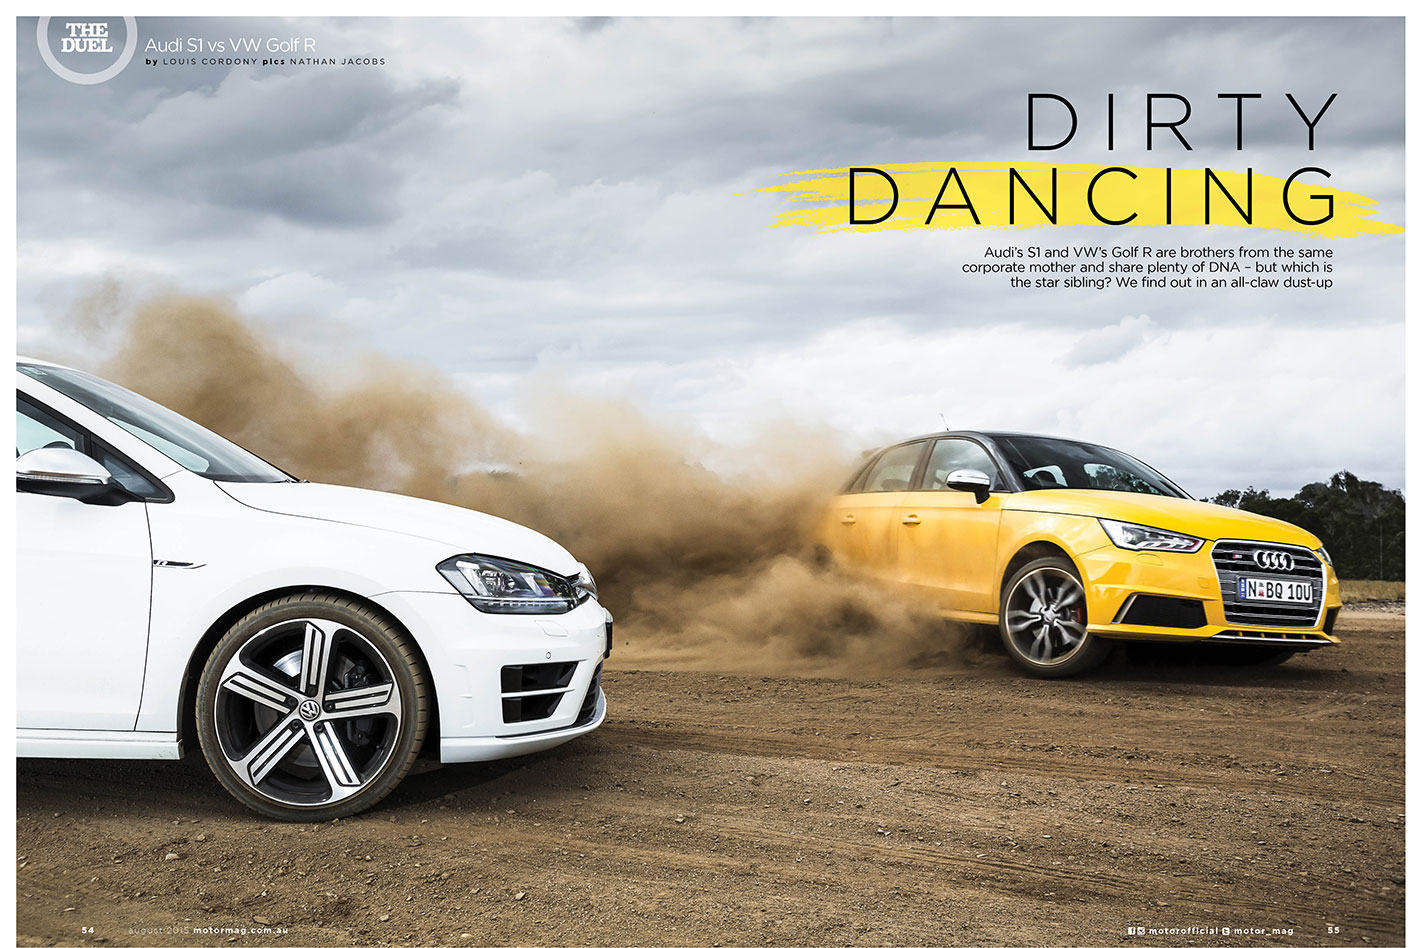 Audi S1 vs VW Golf R